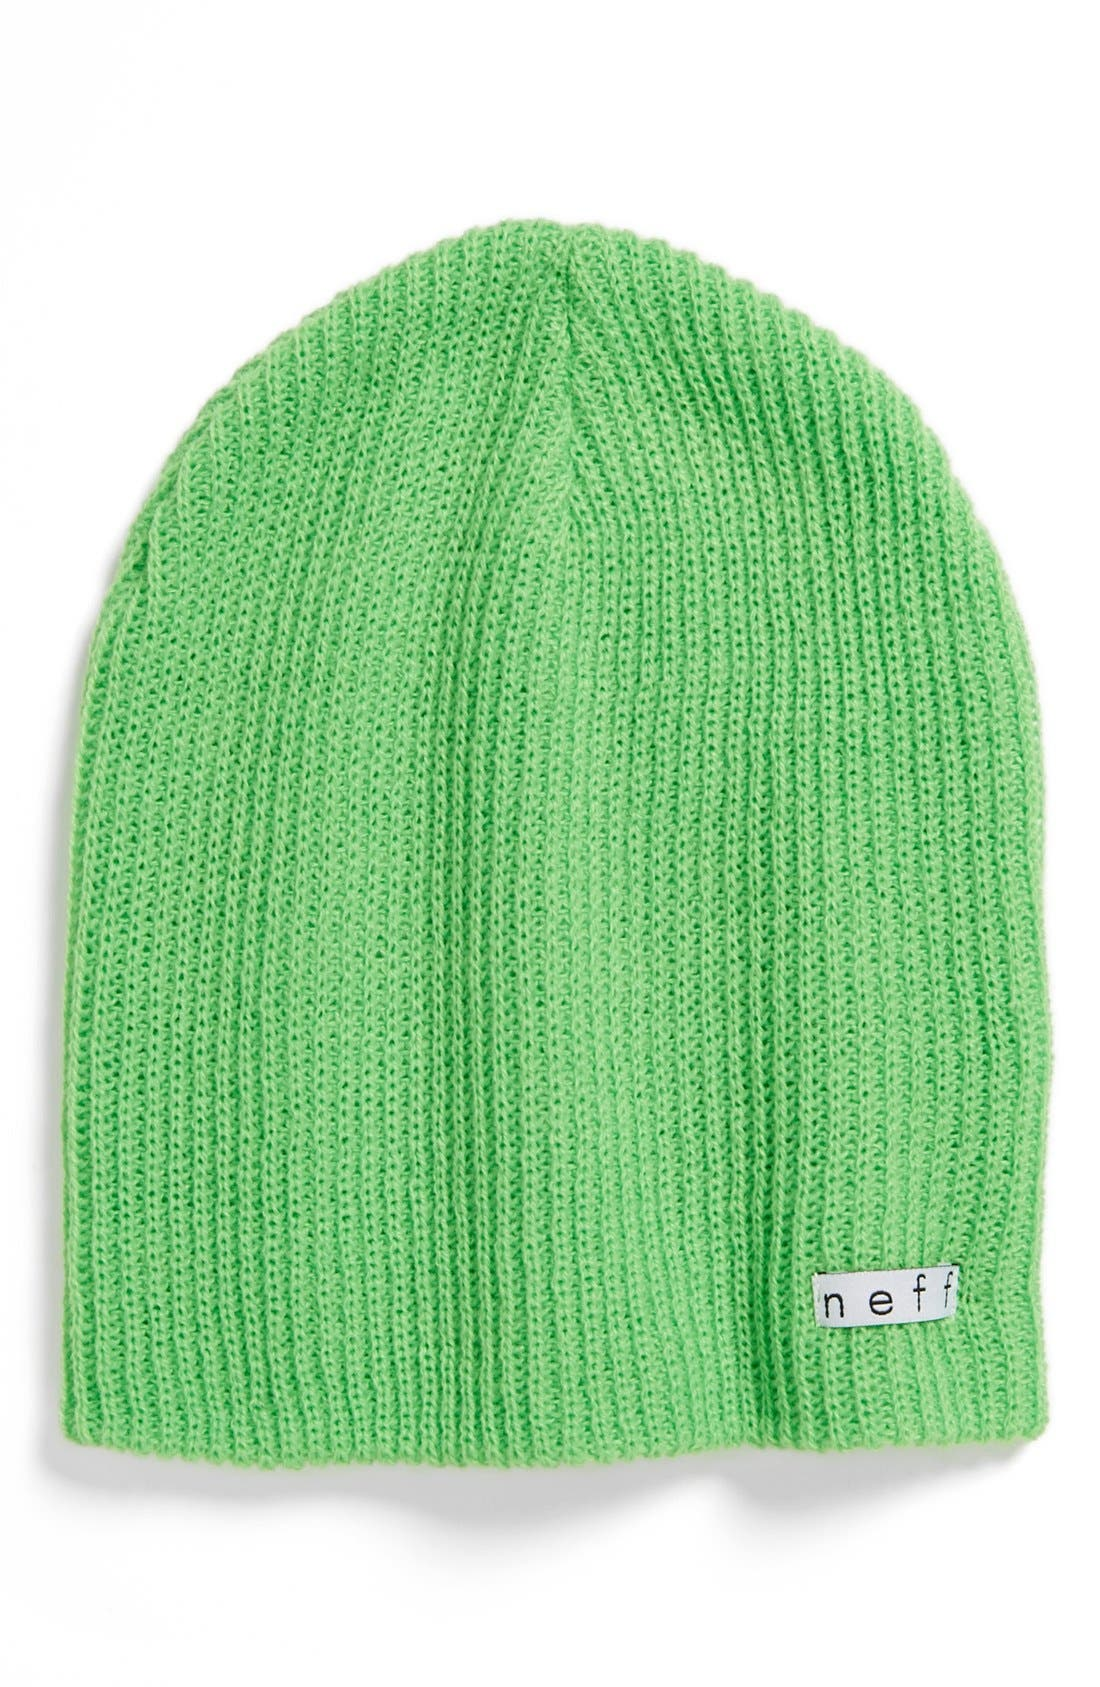 Alternate Image 1 Selected - Neff 'Daily' Beanie